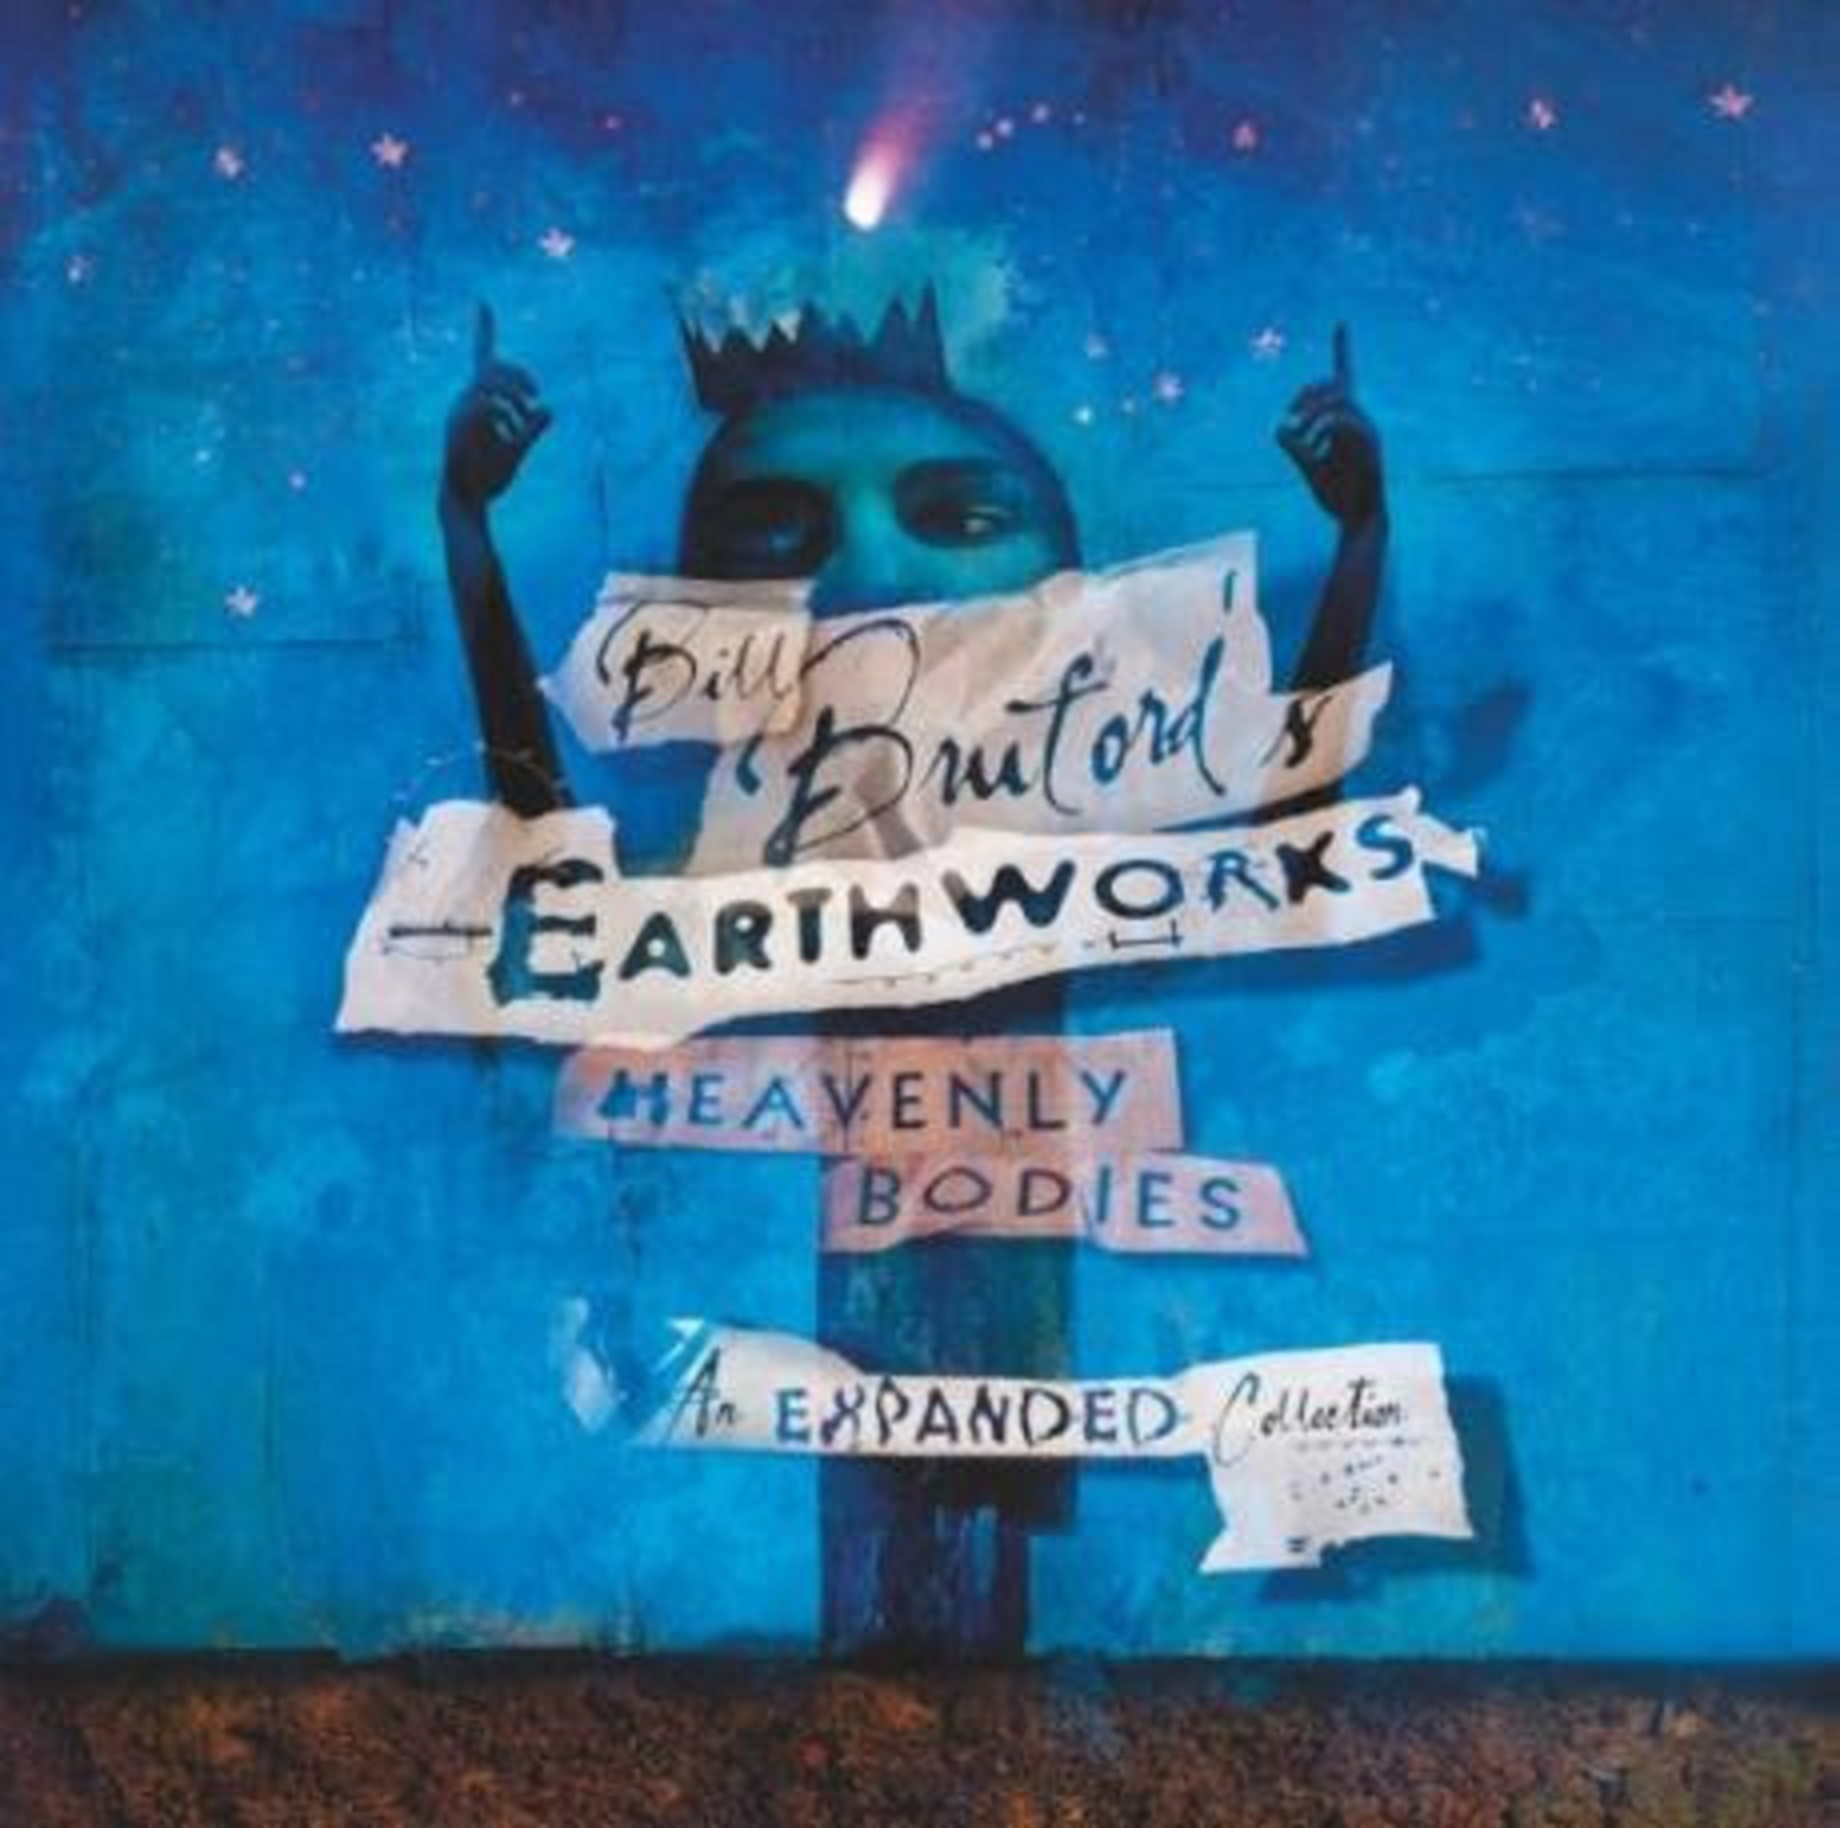 Bill Bruford's Earthworks Announce the Release of 'Heavenly Bodies - The Expanded Collection'